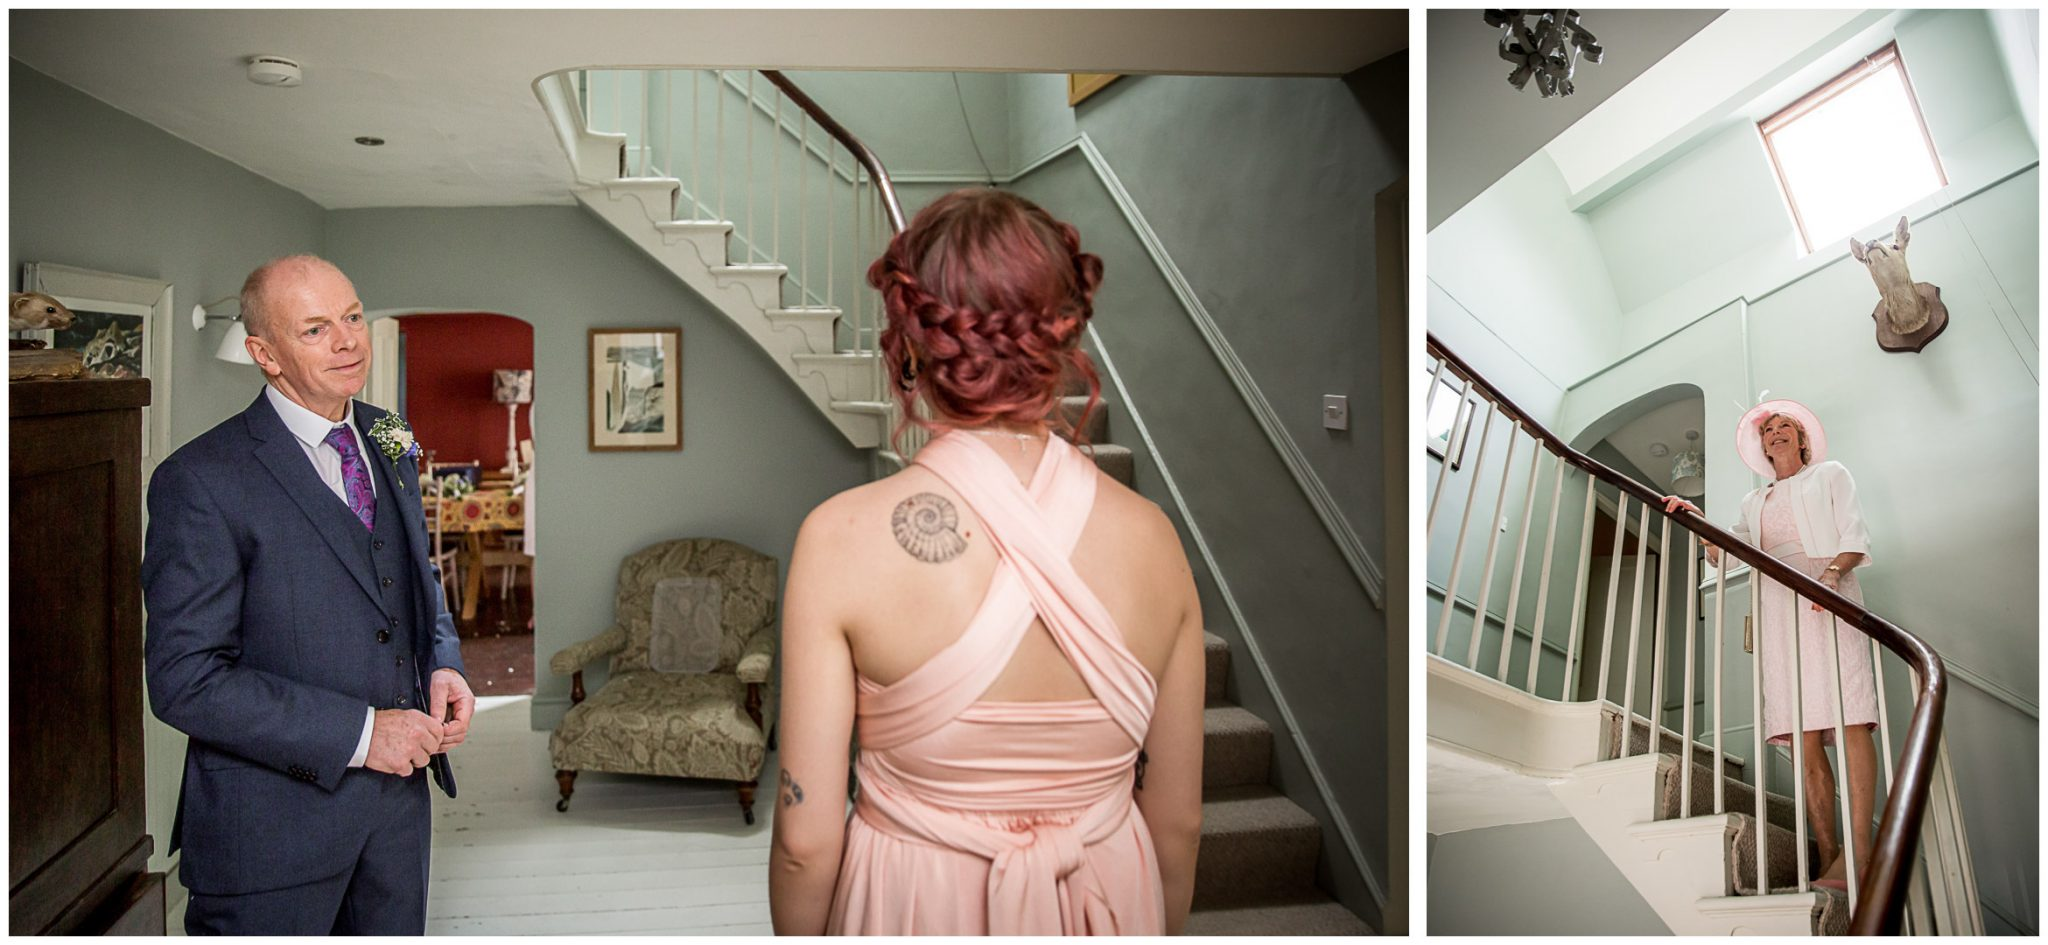 The bride's family wait for the bride to come downstairs after getting dressed